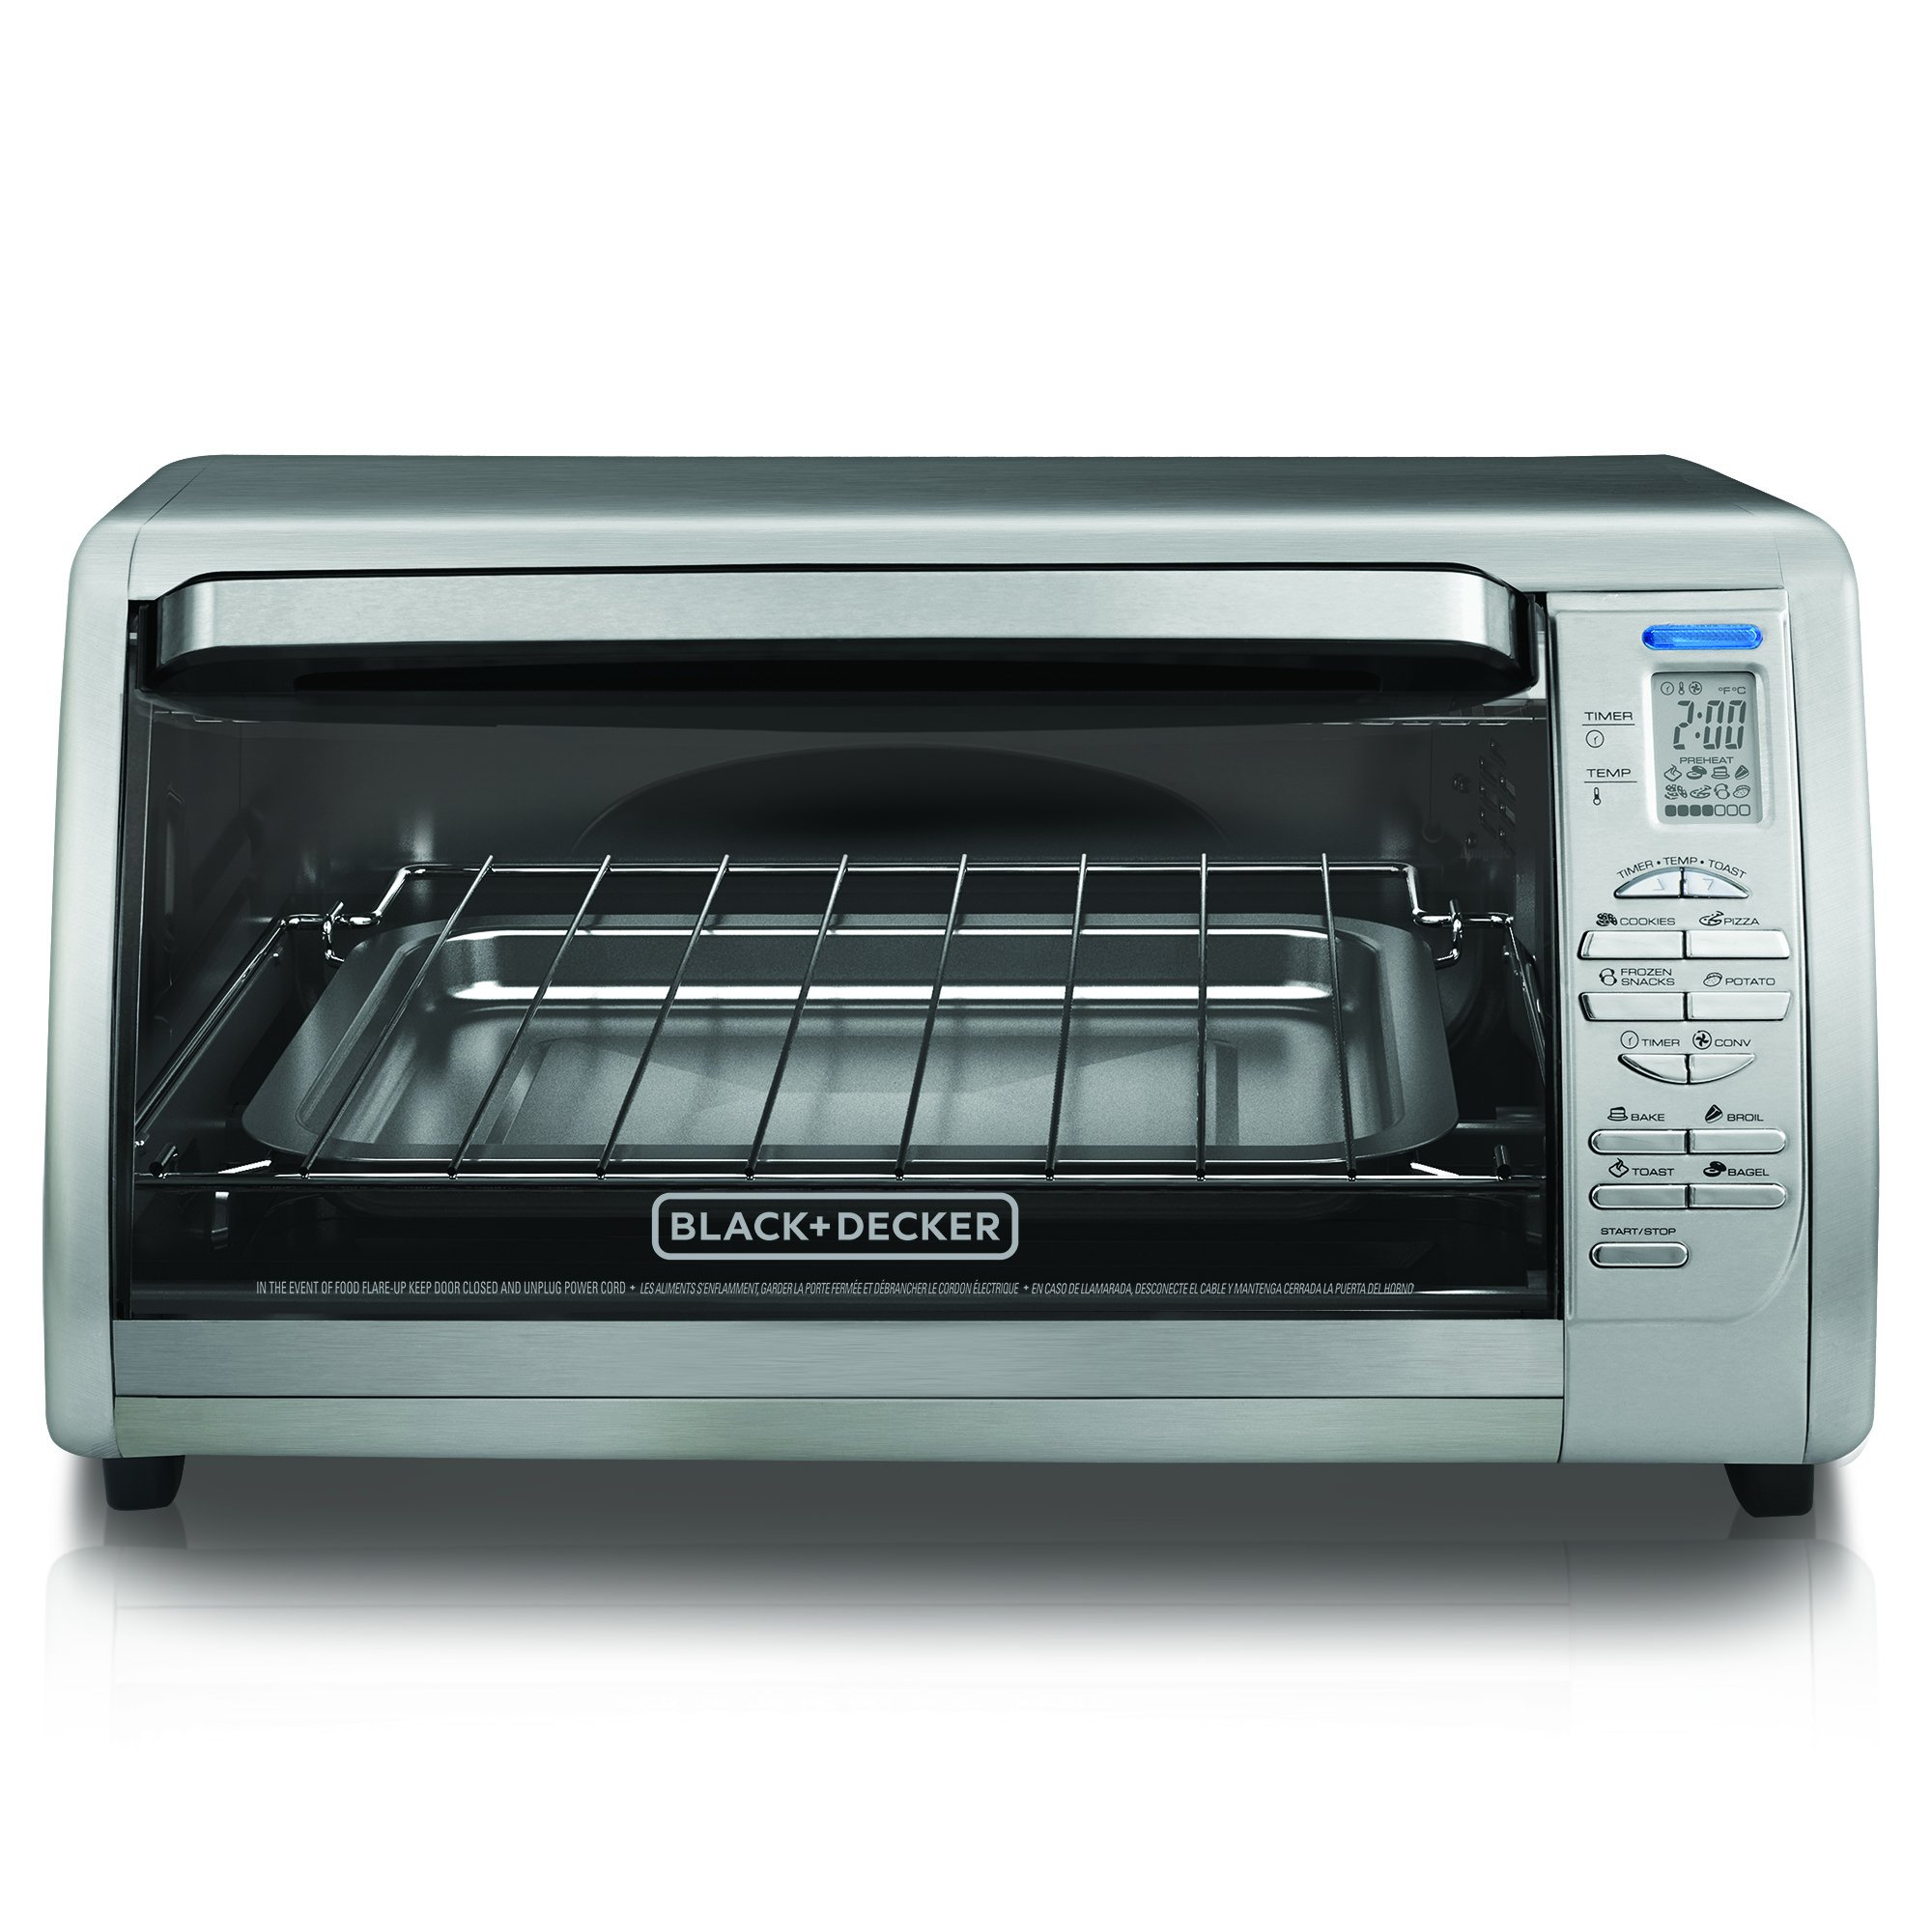 Black decker cto6335s stainless steel countertop convection oven silver ebay for Toaster oven stainless steel interior